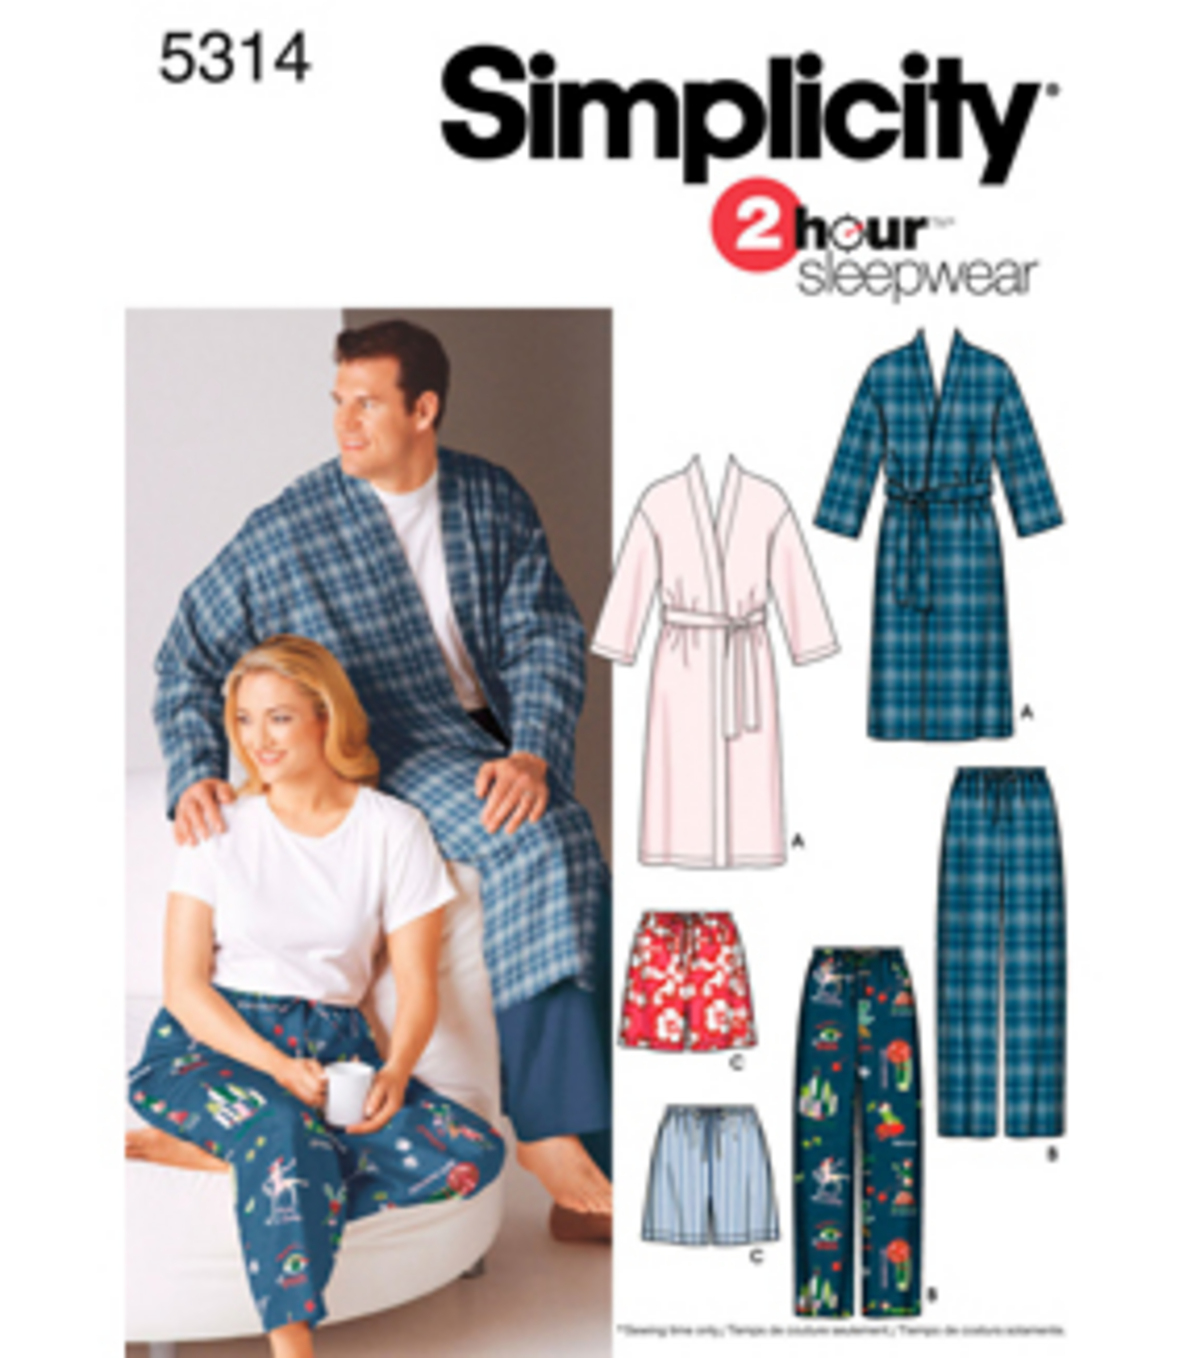 Simplicity Pajama Patterns Unique Design Ideas